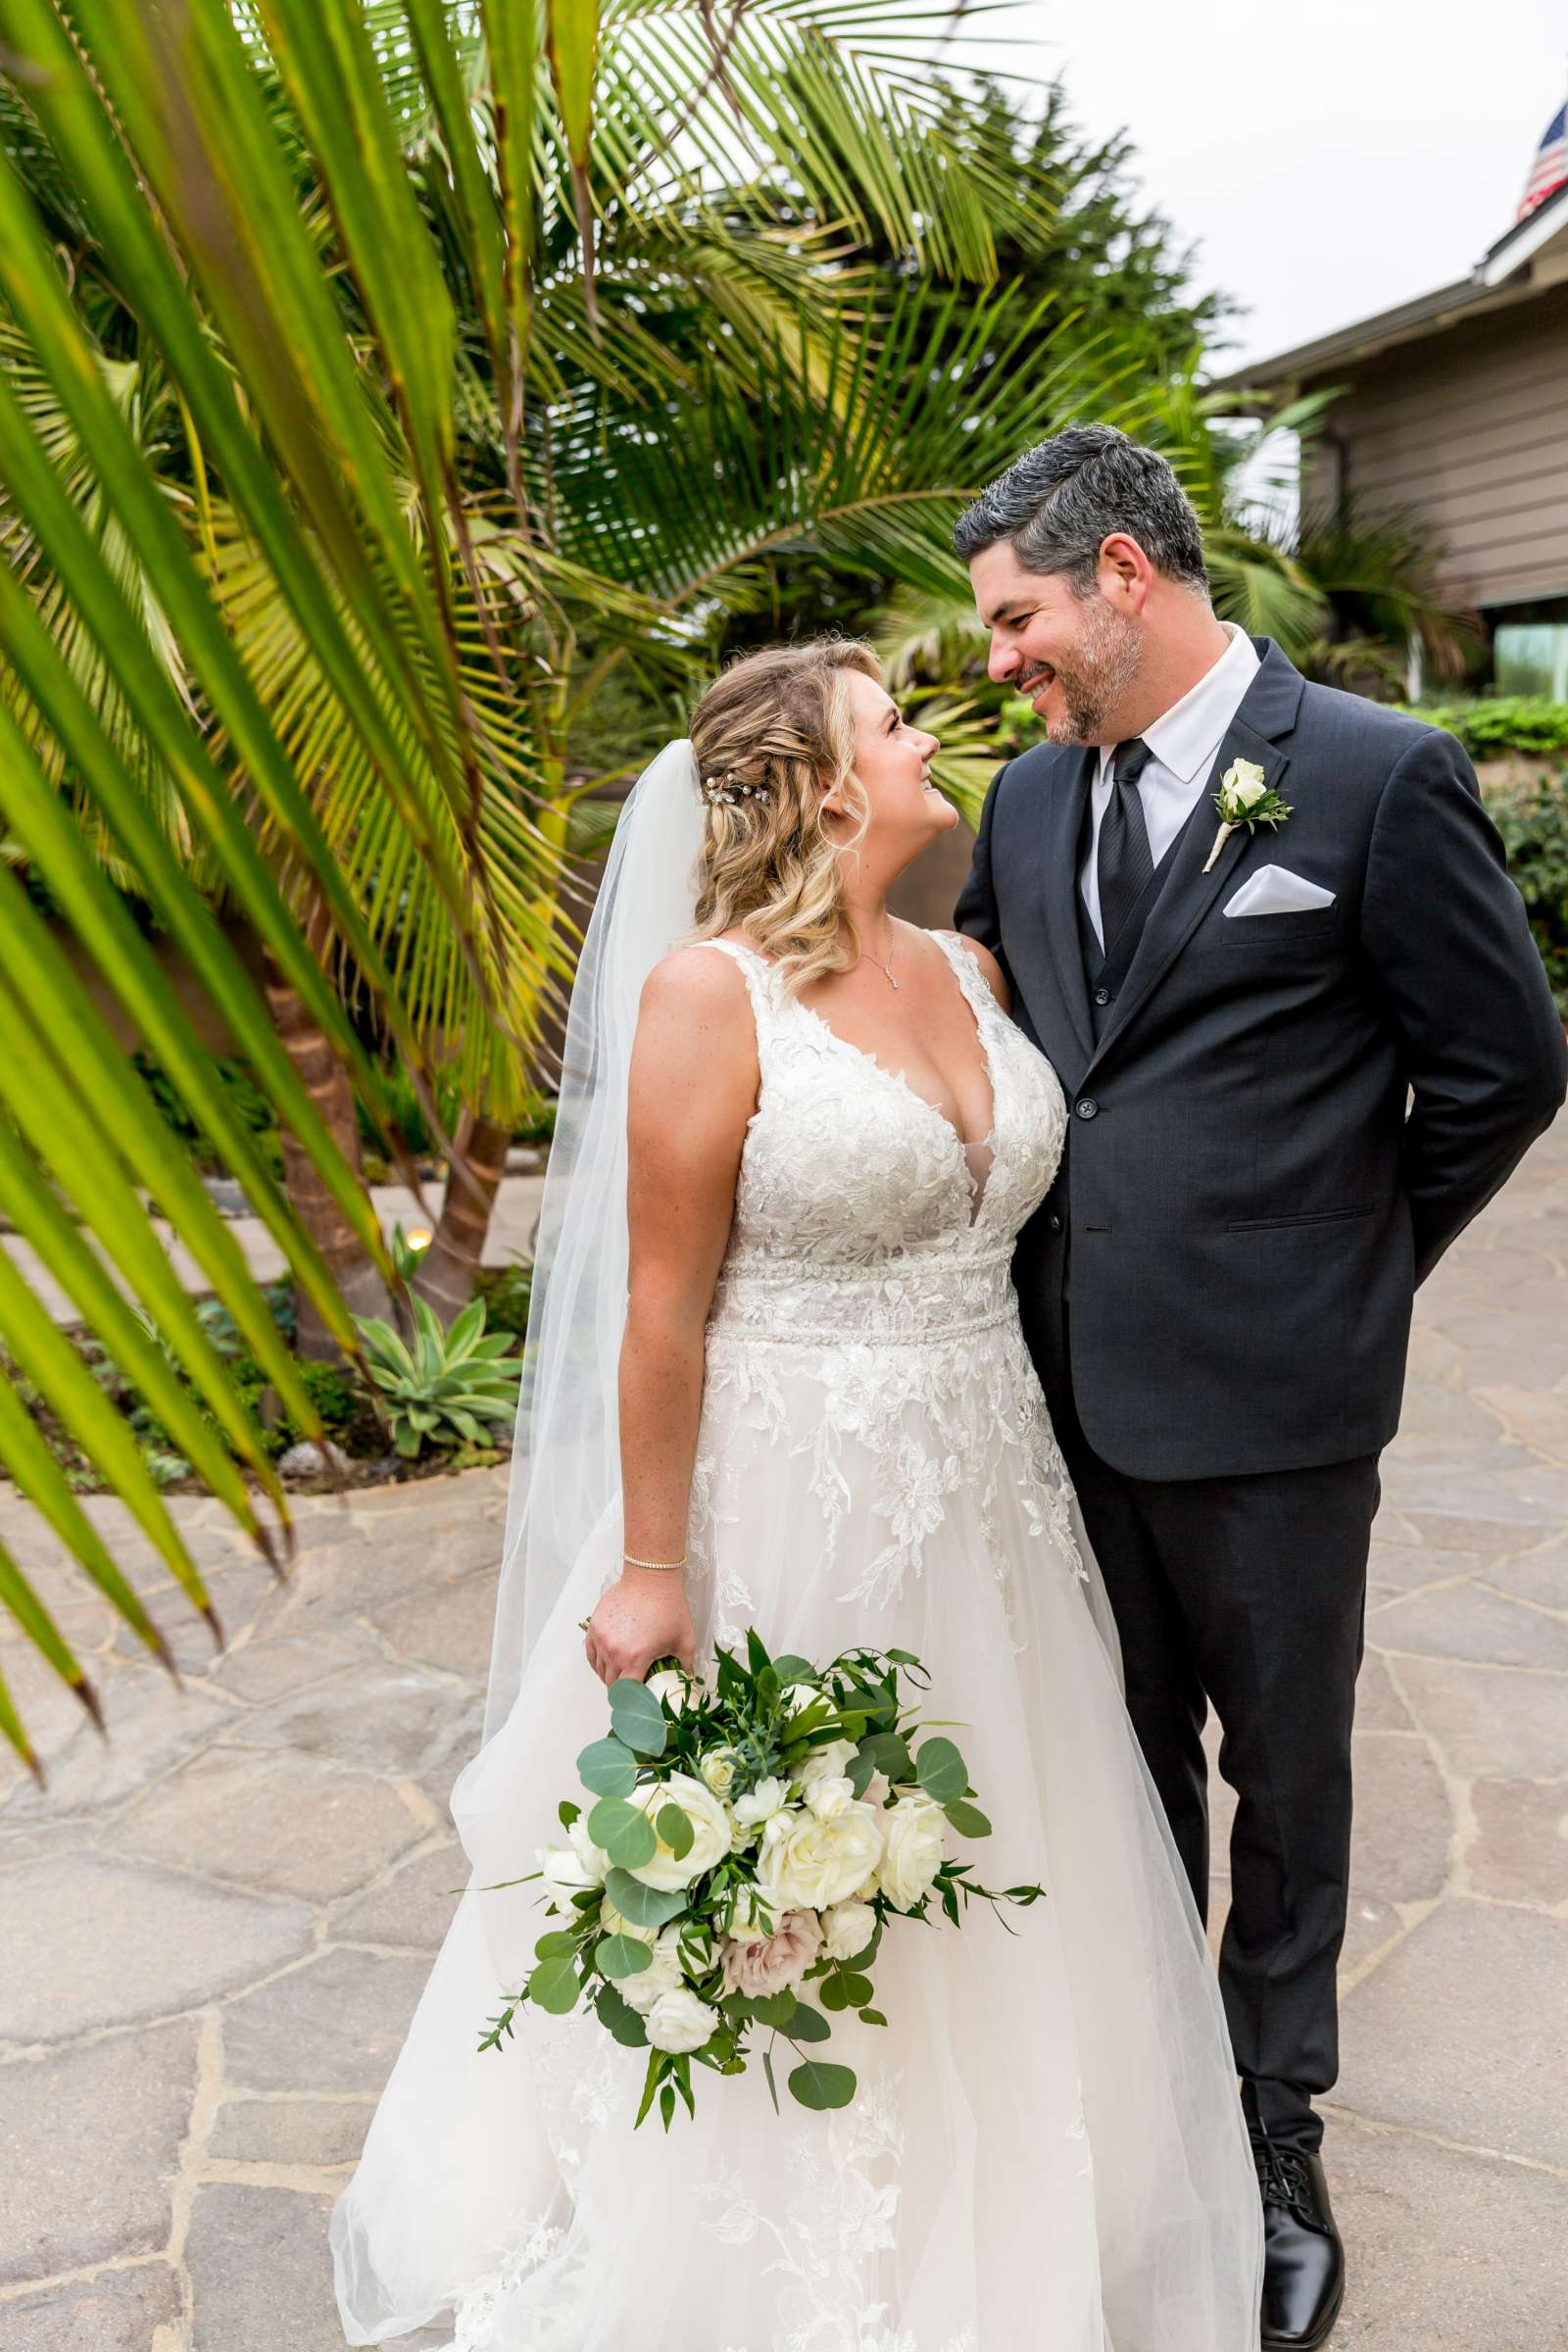 Cape Rey Carlsbad, A Hilton Resort Wedding, Michelle and Justin Wedding Photo #13 by True Photography